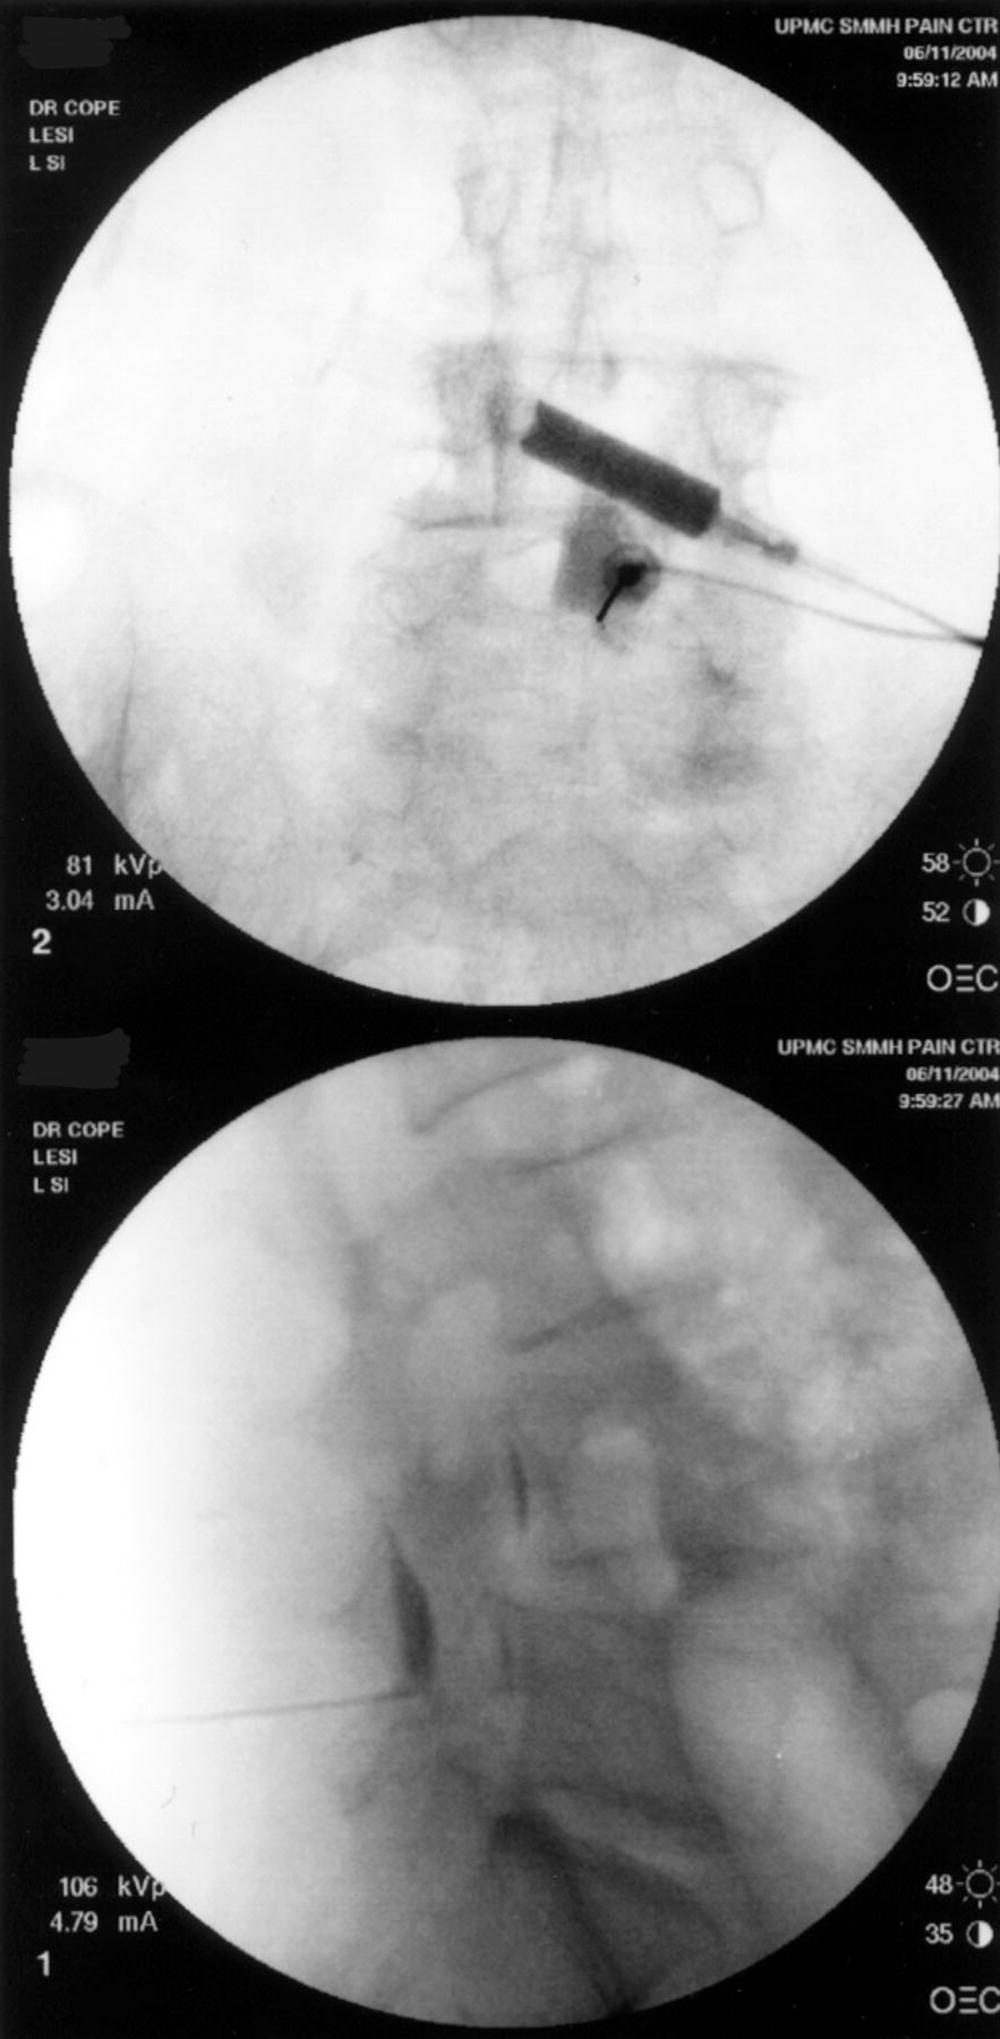 Nonsurgical Interventional Pain-Relieving Procedures